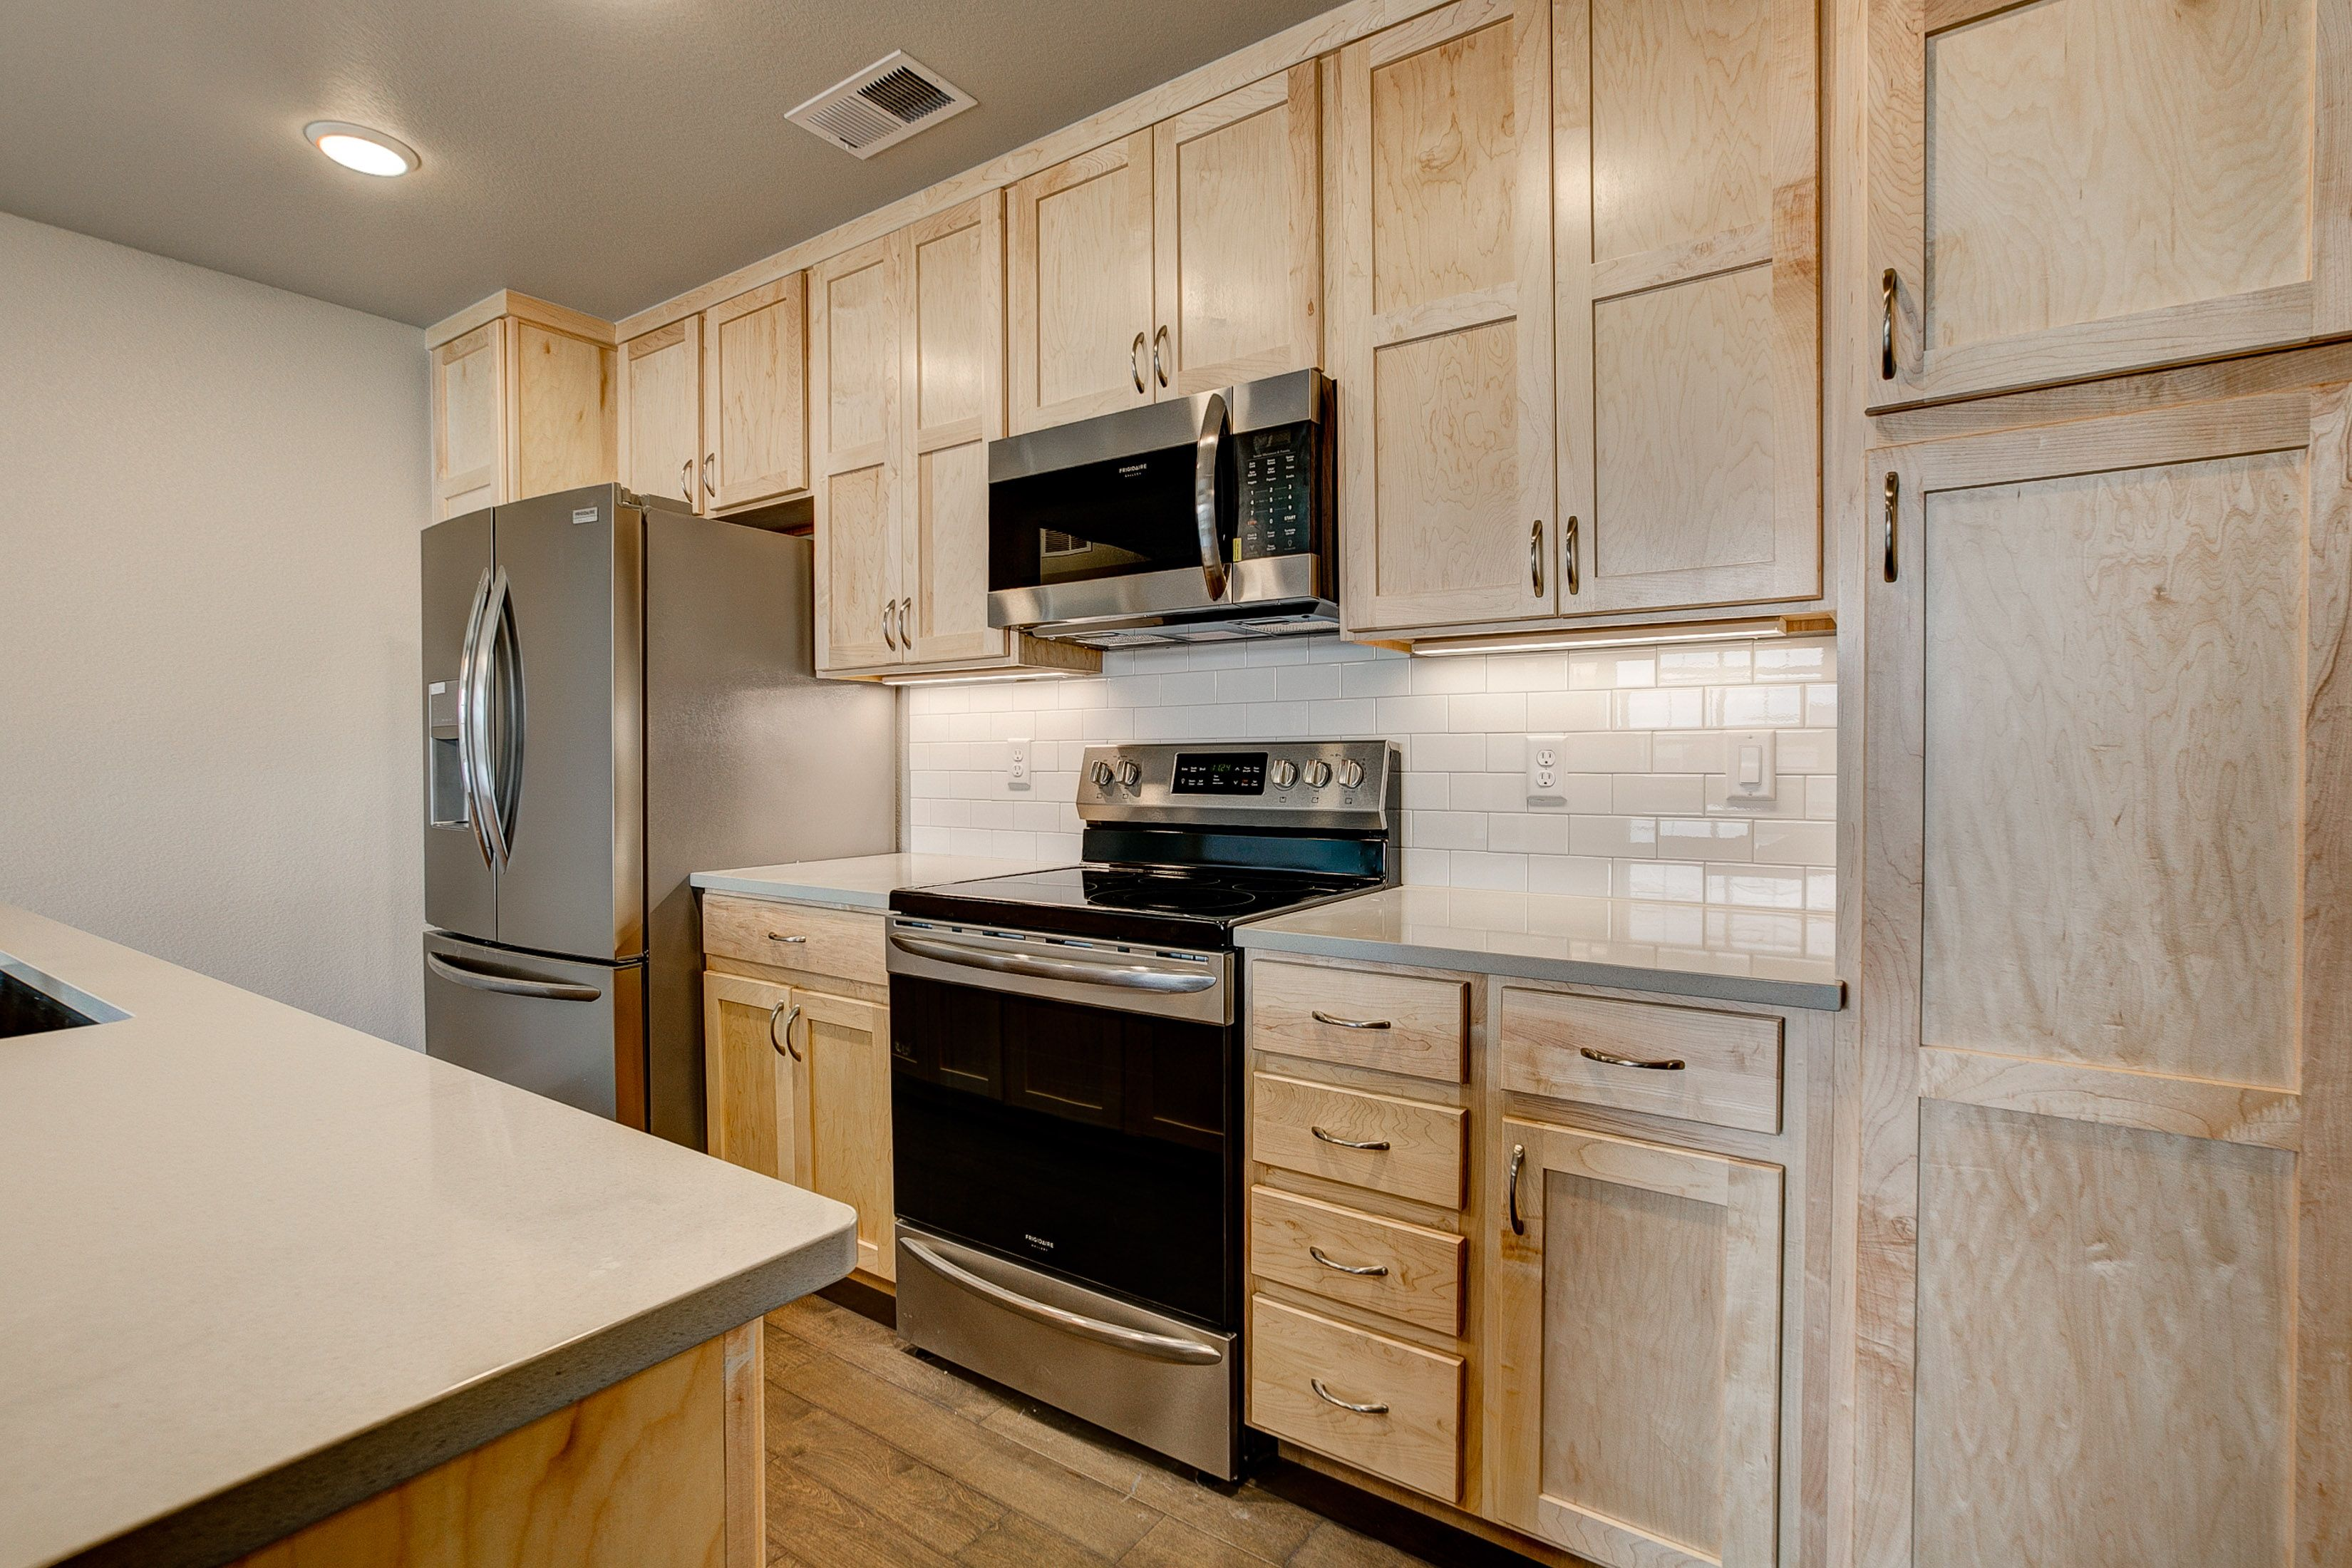 Kitchen featured in the Oxford By Landmark Homes  in Fort Collins-Loveland, CO